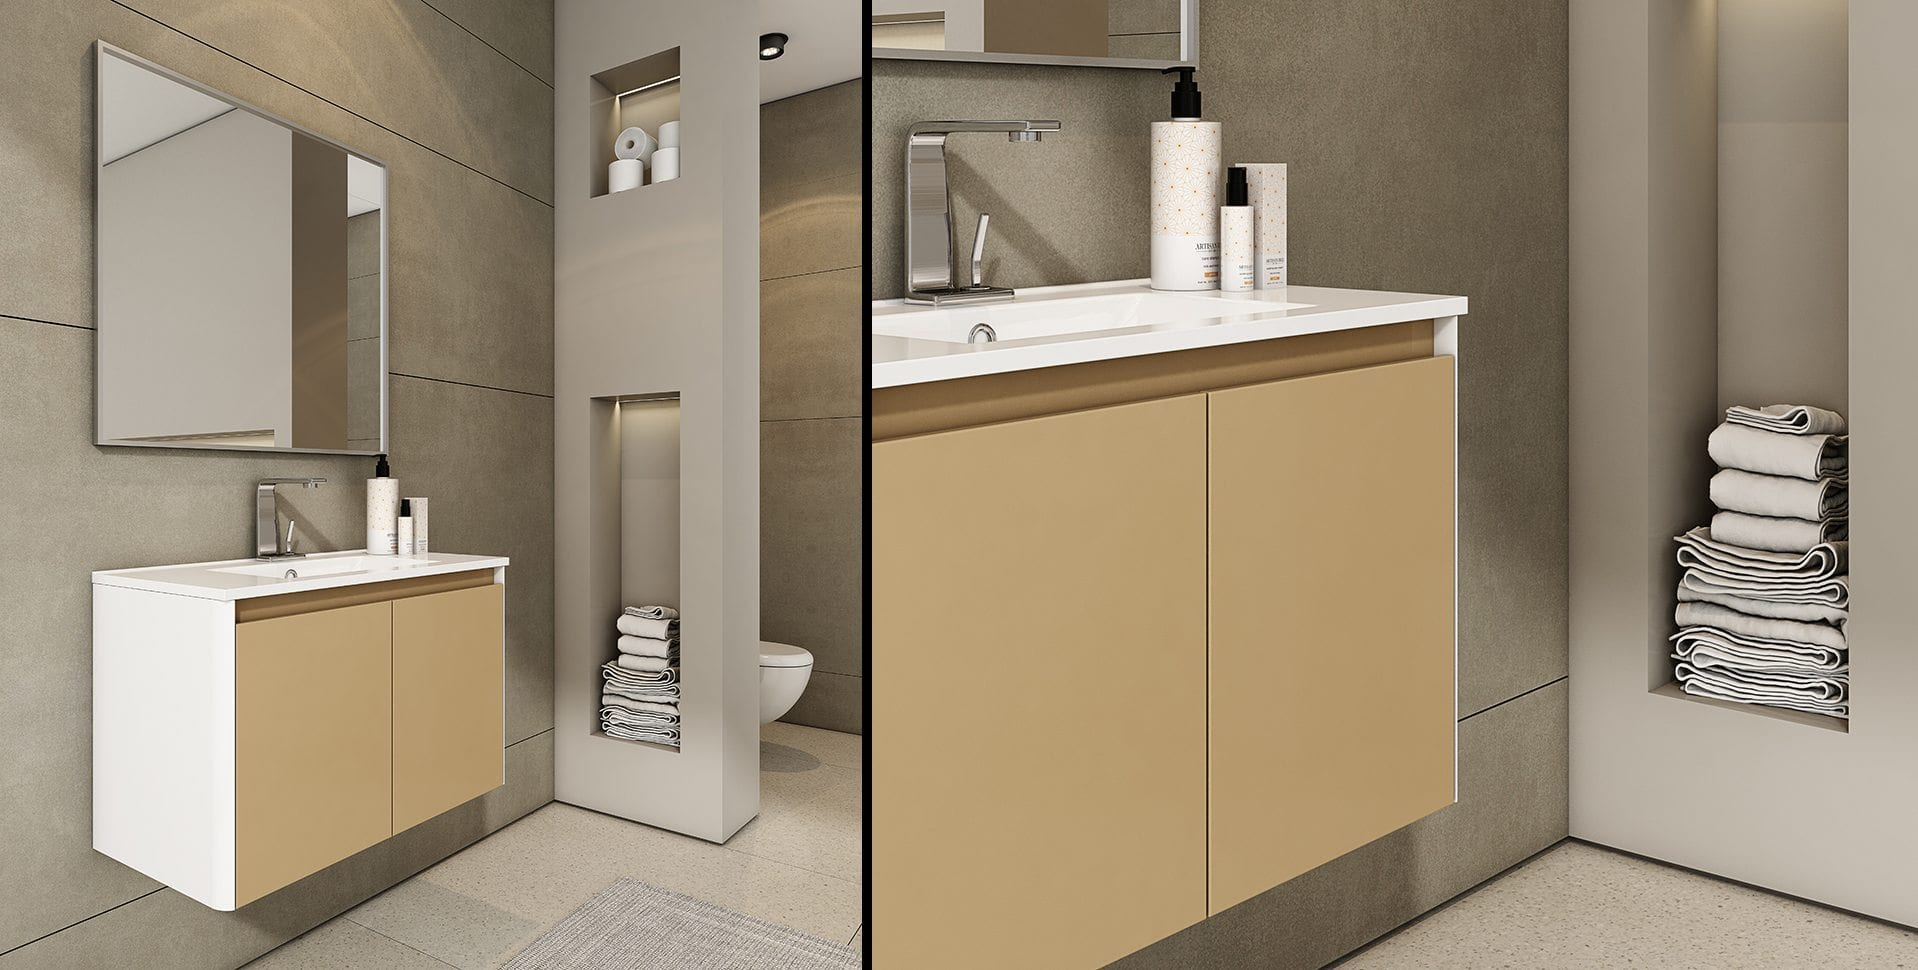 Maayan-Golan_Architectural-Visualization_product-visualization_bathroom-cabinets_el-gal_02